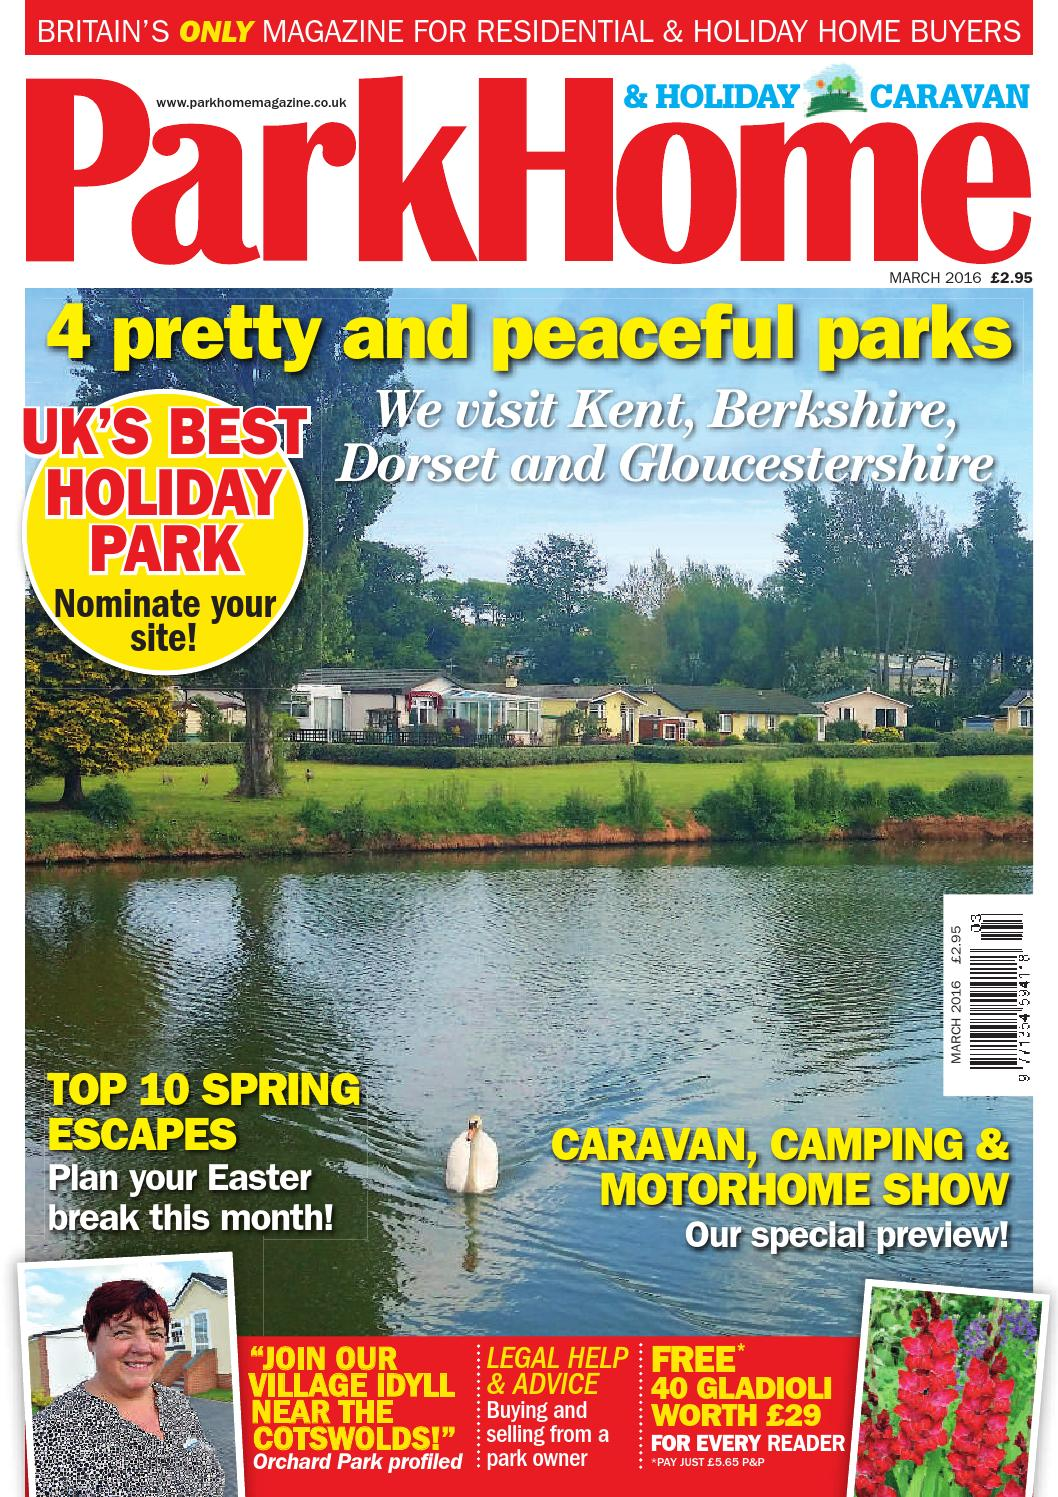 Parkhomes And Holiday Caravan March 2016 By KELSEY Publishing Ltd